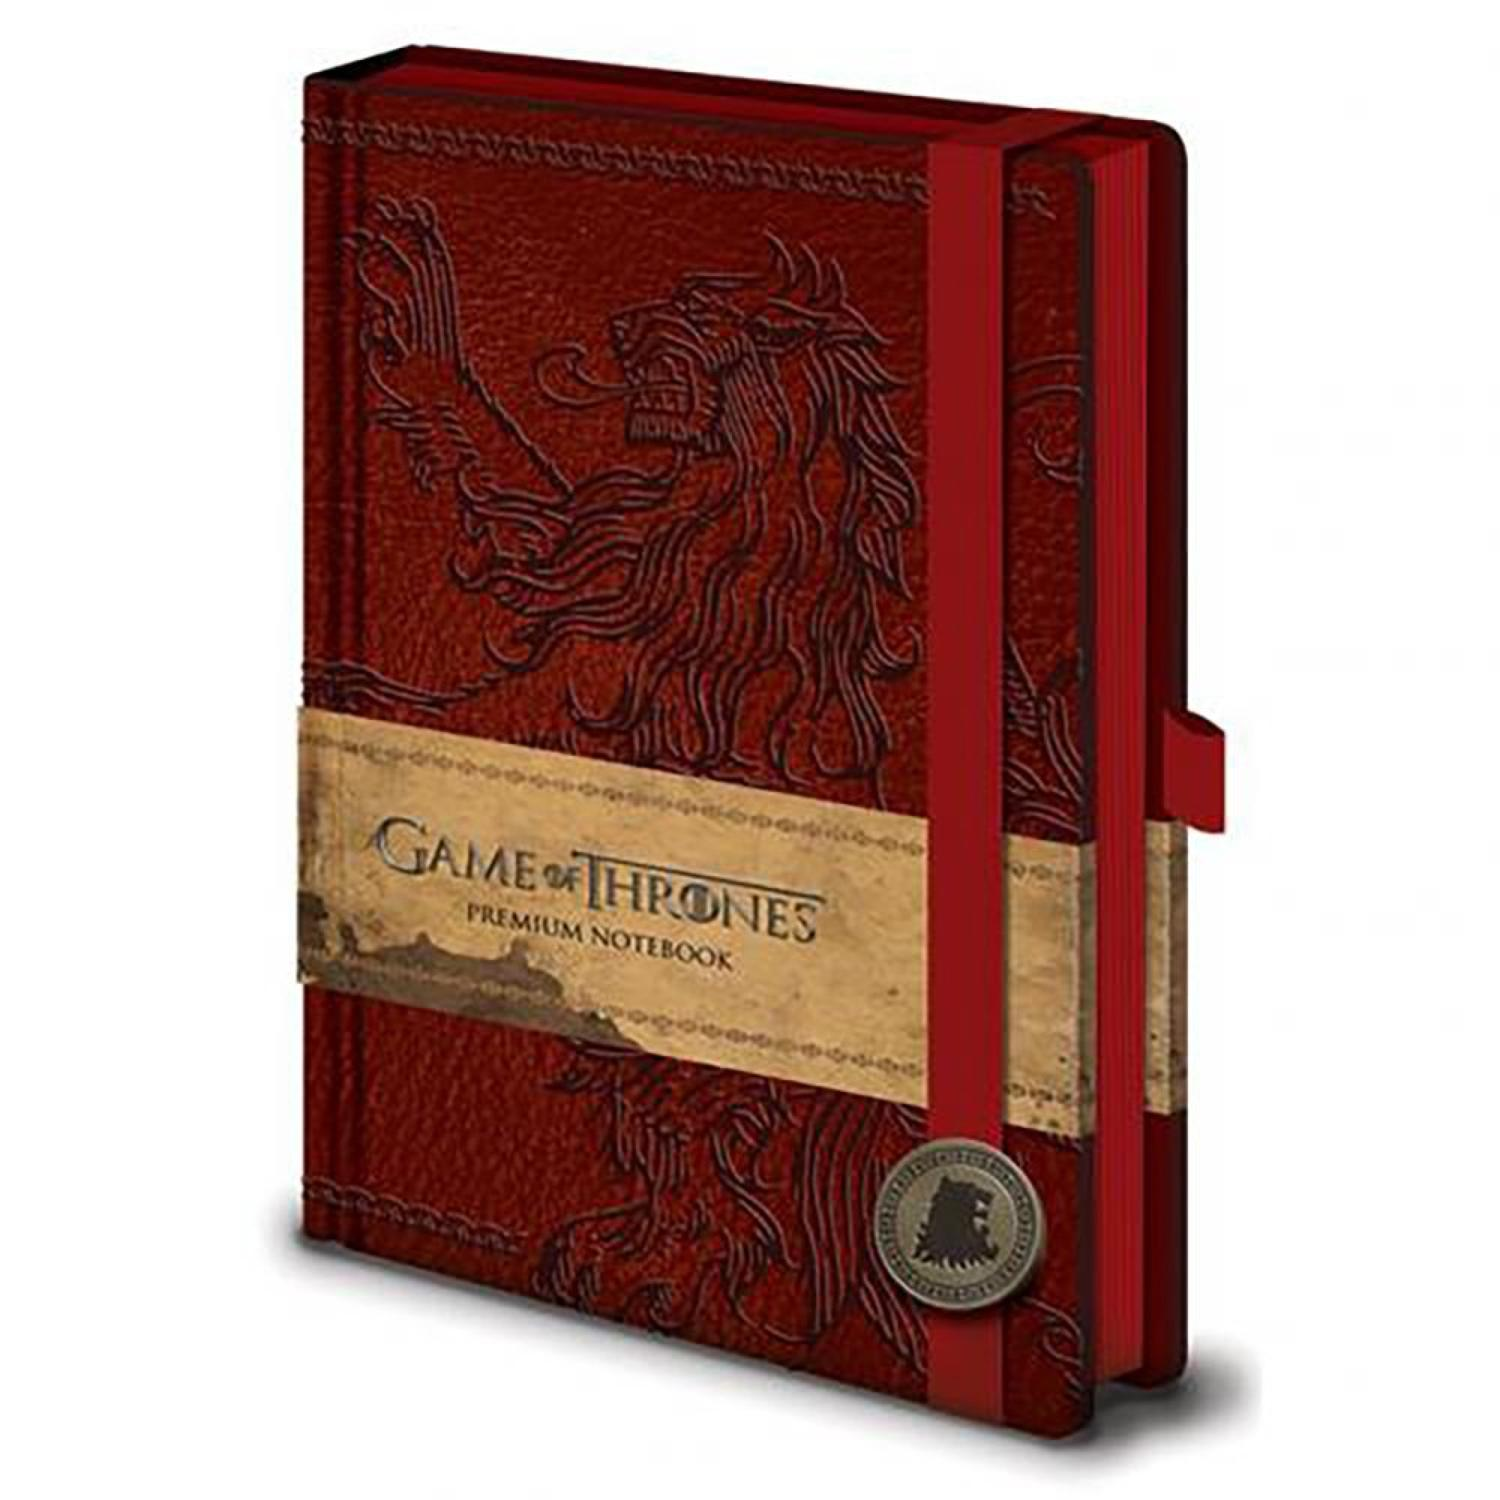 Game of Thrones - House Lannister Premium Notebook